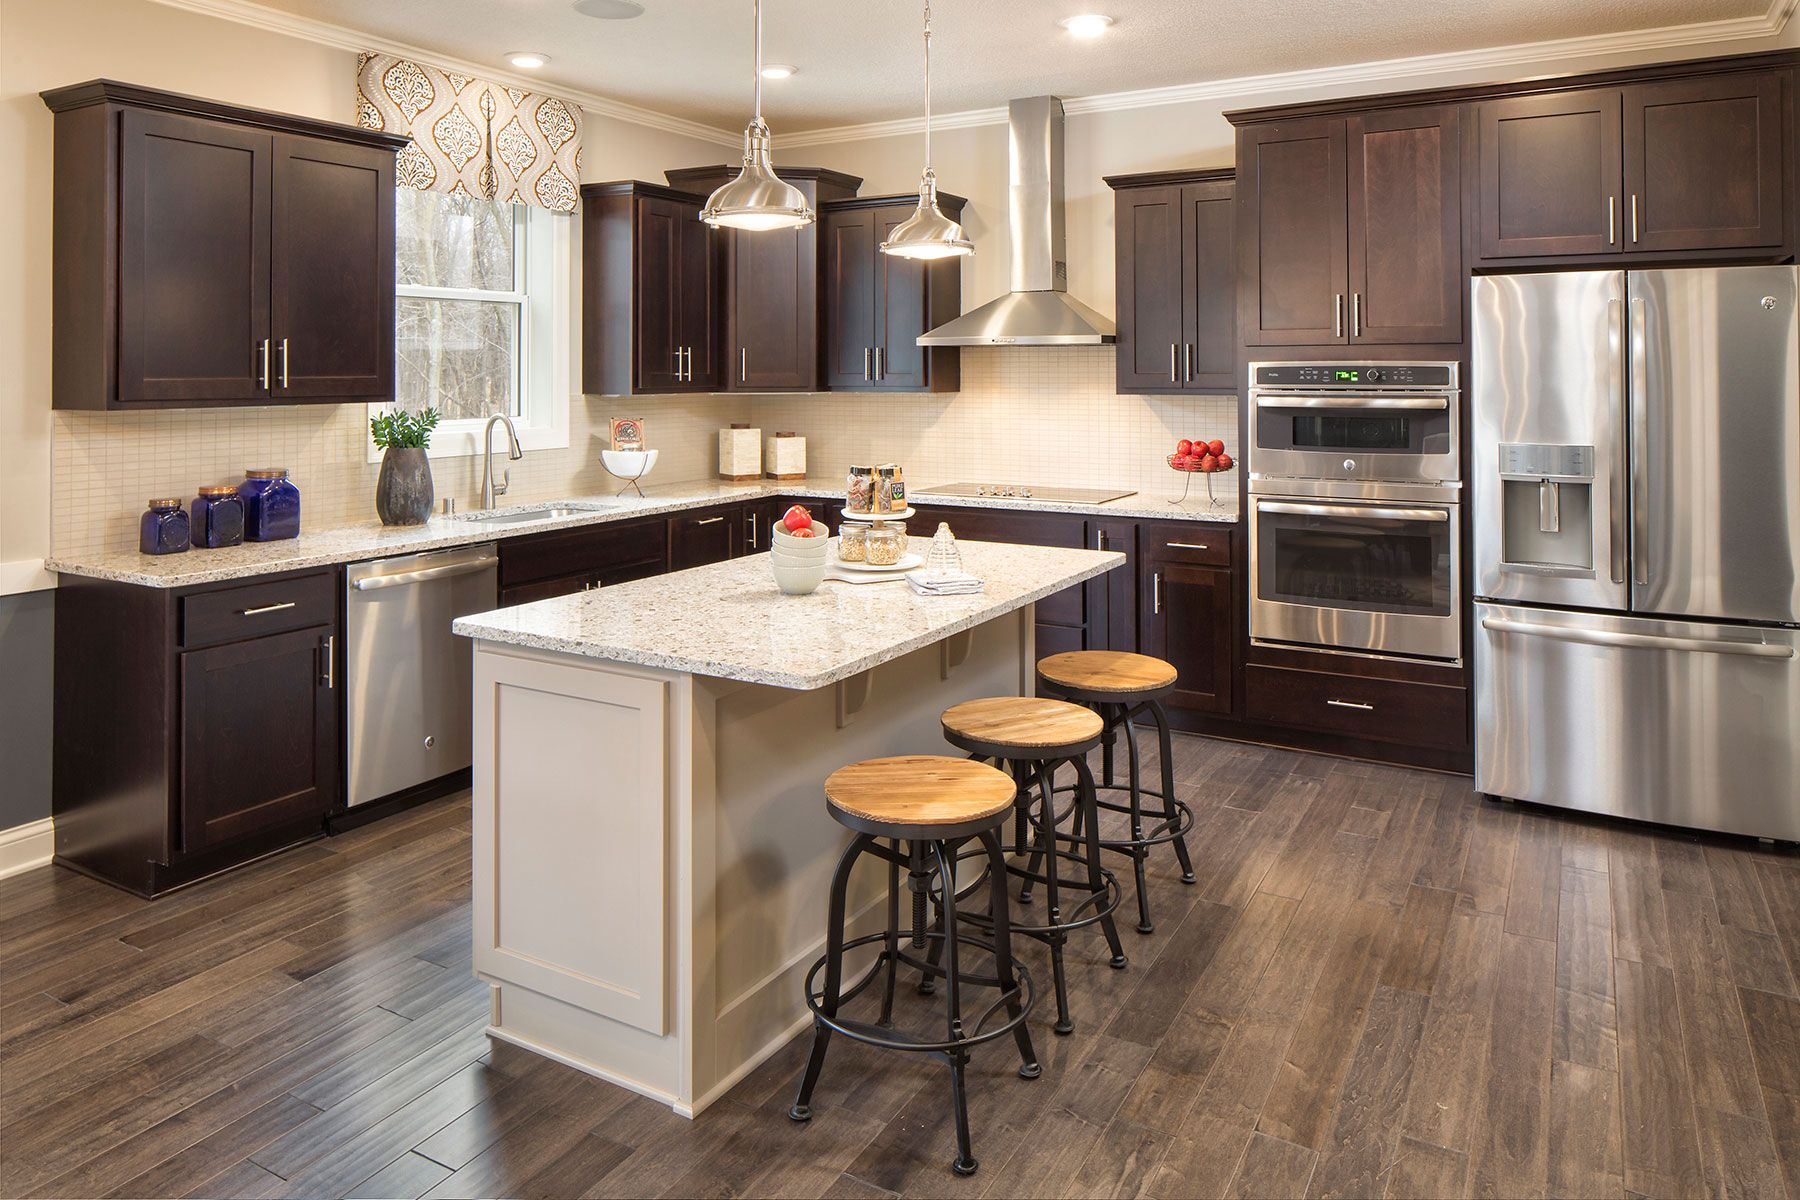 Kitchen featured in the Eastman By M/I Homes in Minneapolis-St. Paul, MN